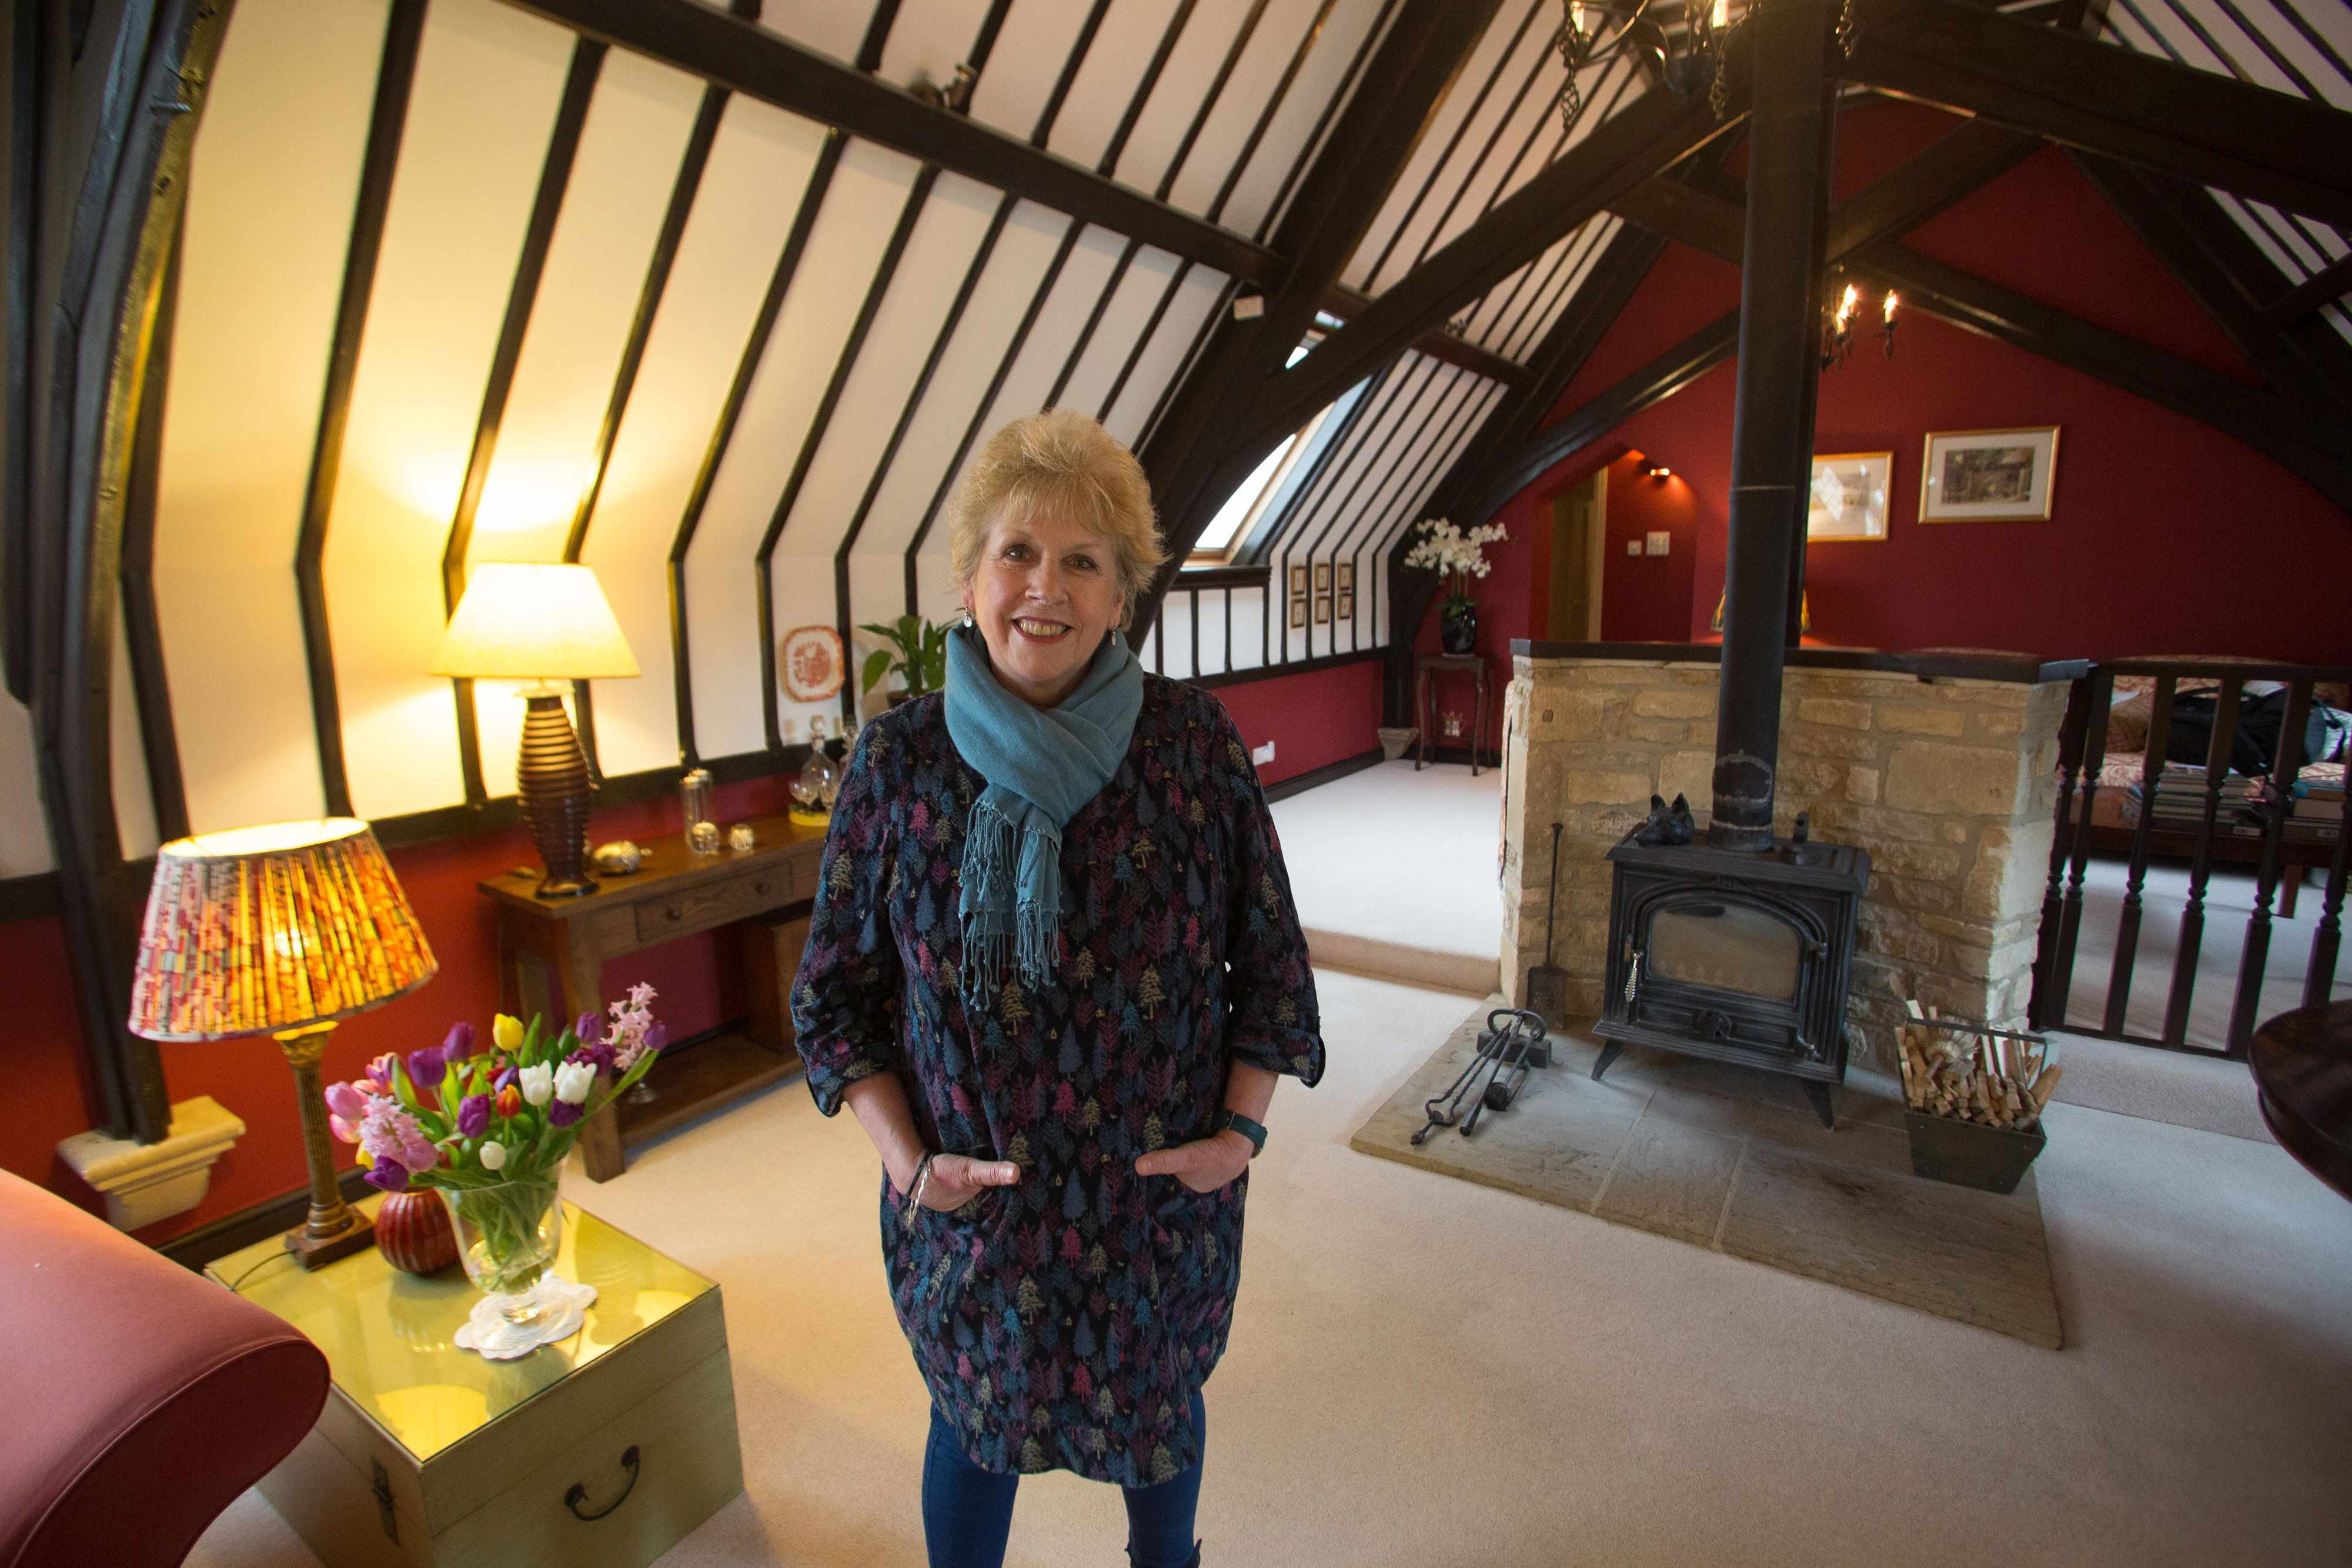 Wendy Veale who owns The Old School B&B which is the highest rated in europe on Tripadvisor and number four in the world. Little Compton, Moreton-in-Marsh. 23 January 2018